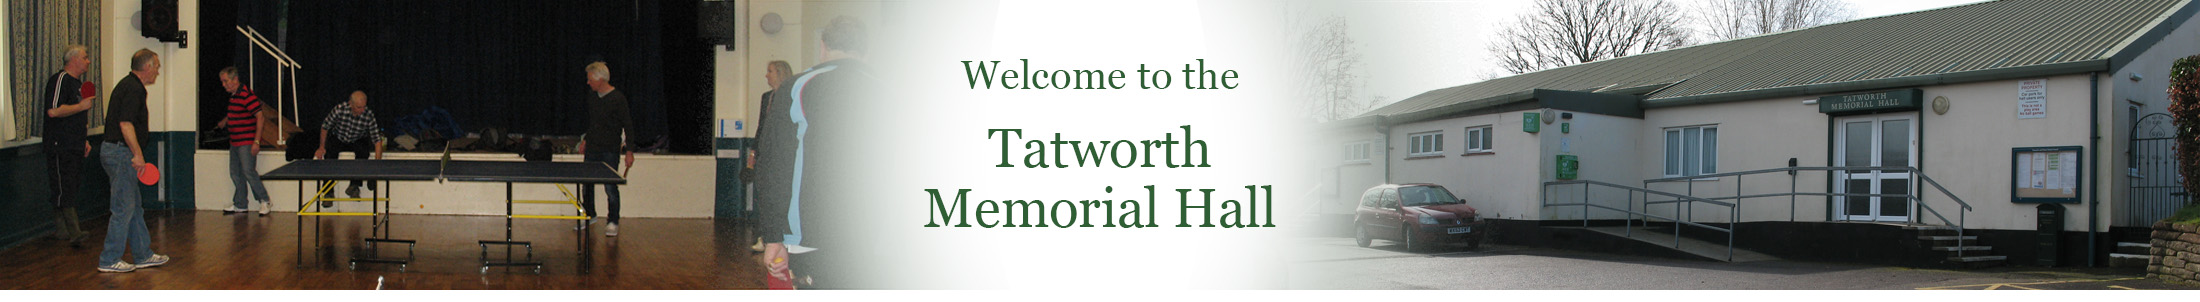 Header Image for Tatworth Memorial Hall